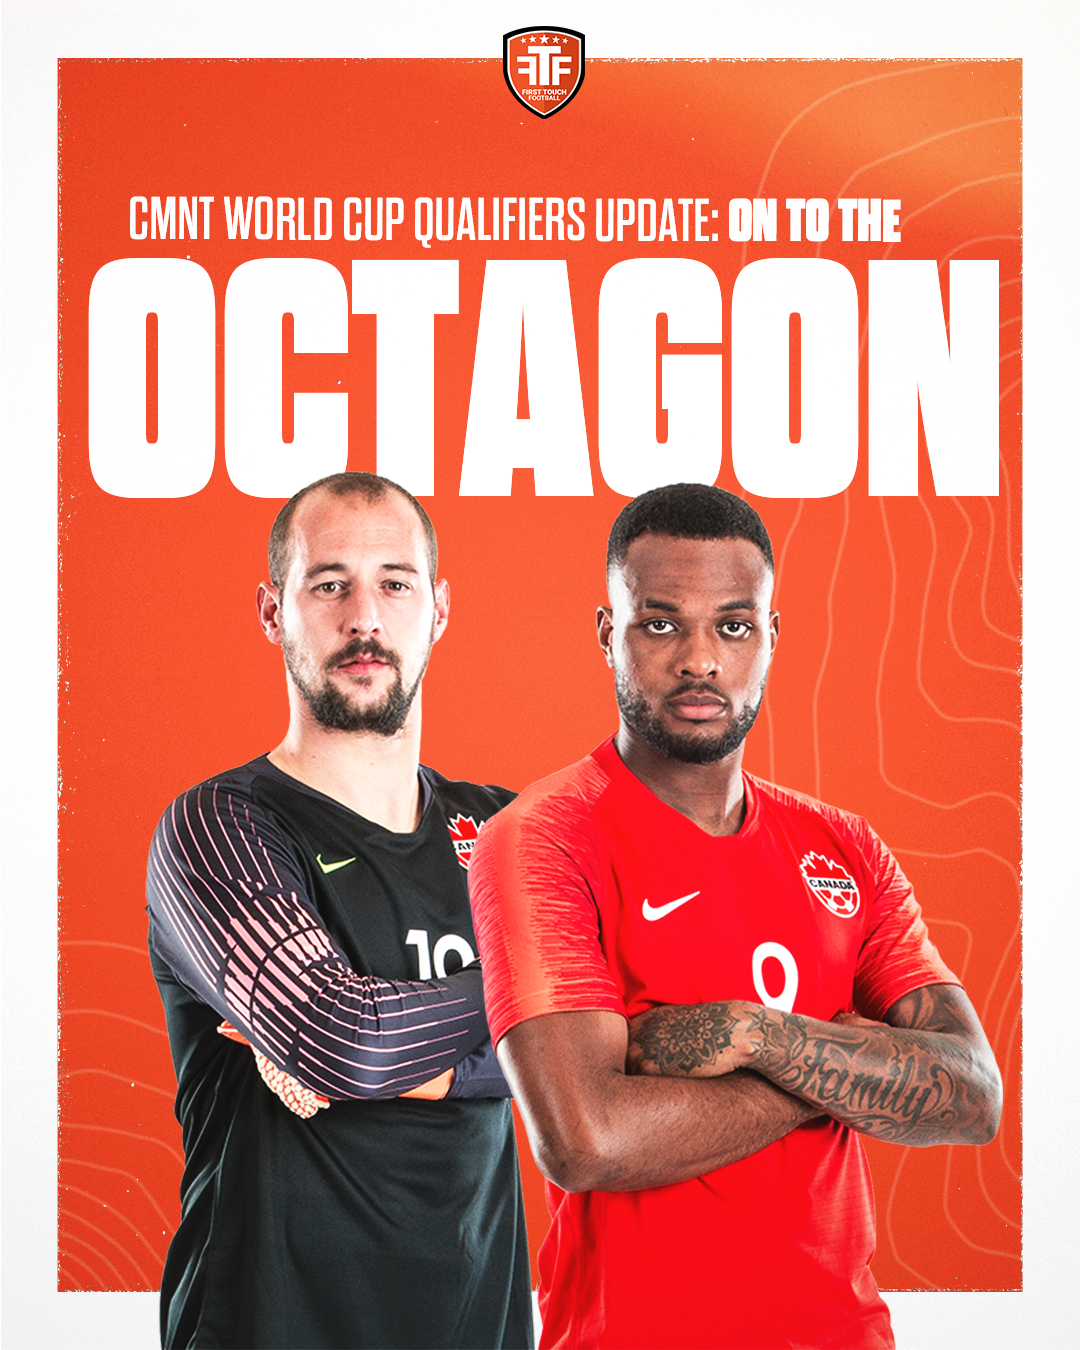 CMNT World Cup Qualifiers Update: On to the Octagon!